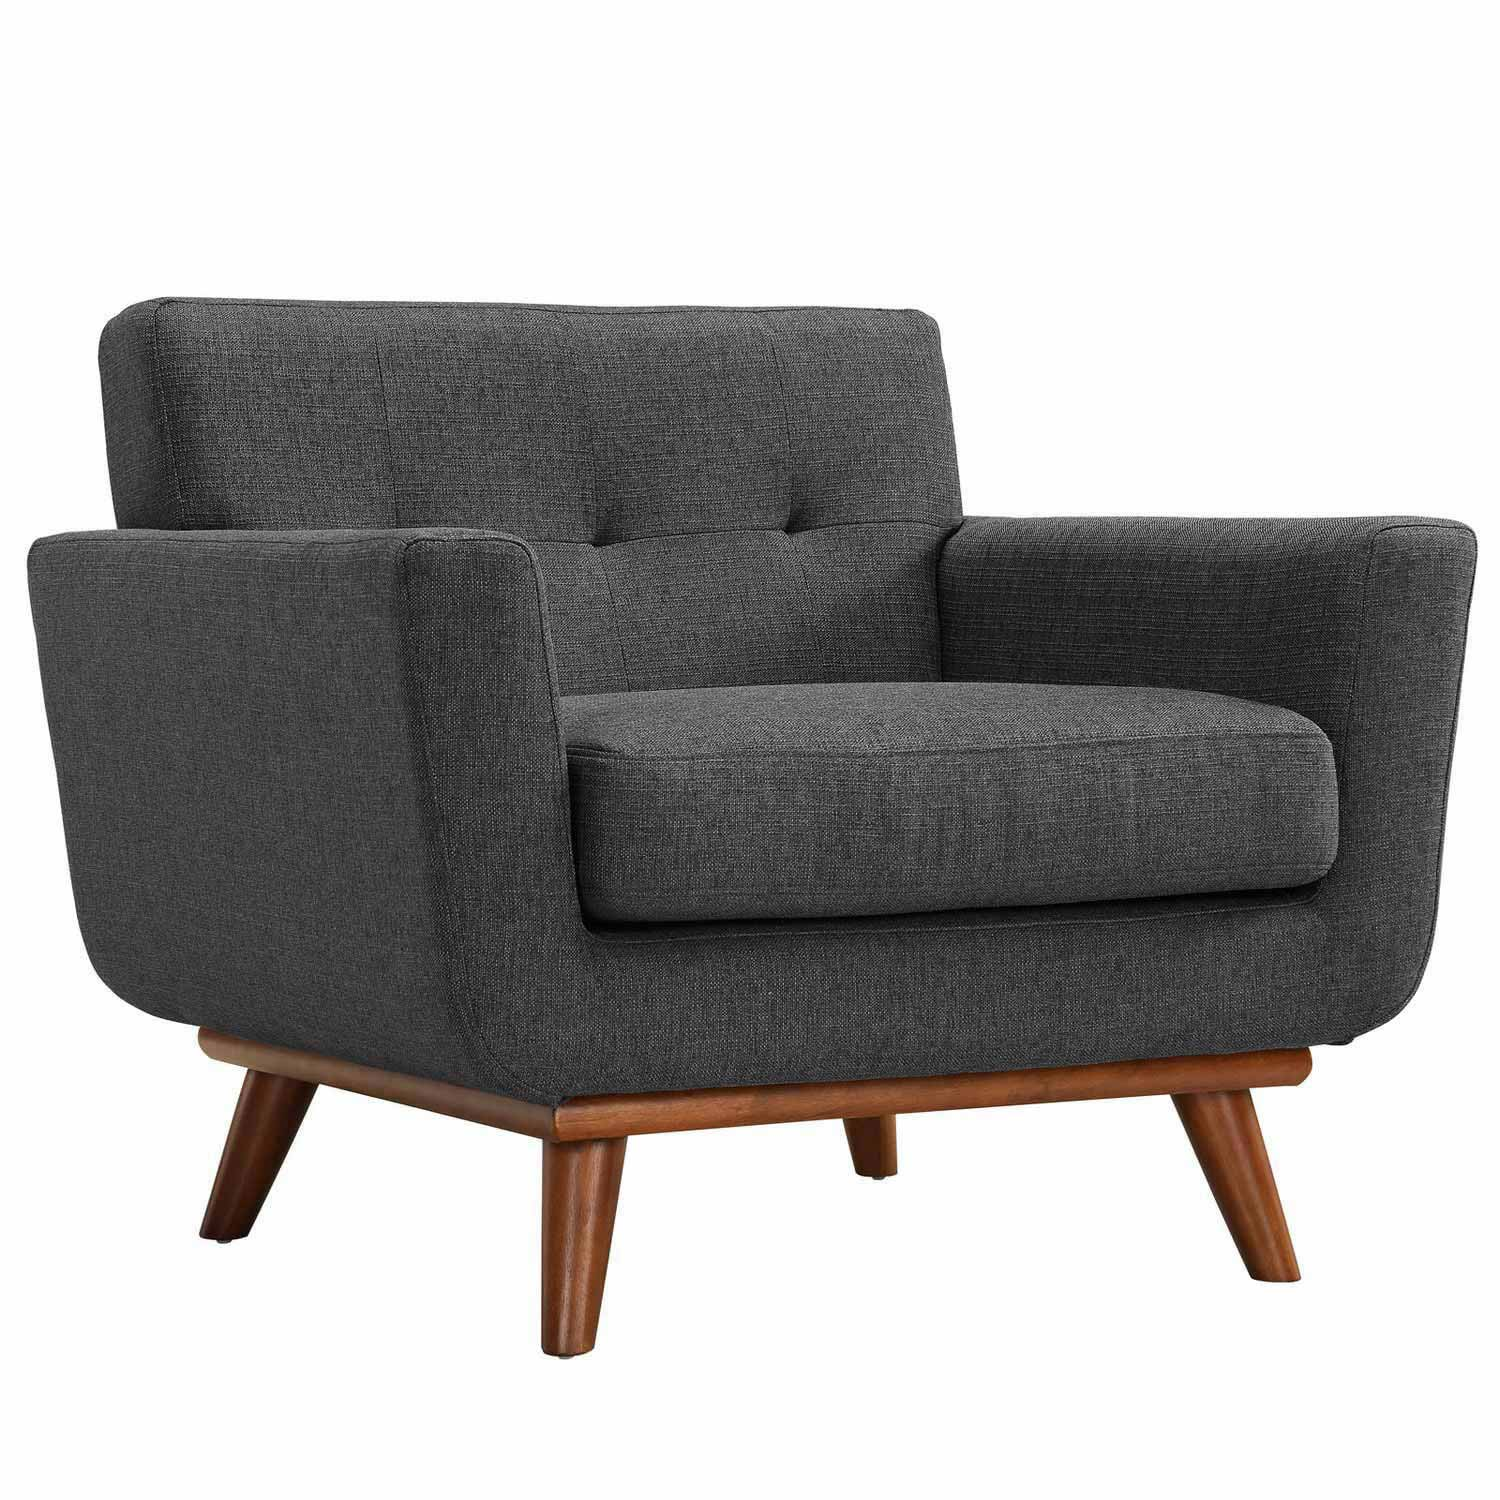 Modway Engage Armchairs and Sofa Set of 3 - Gray